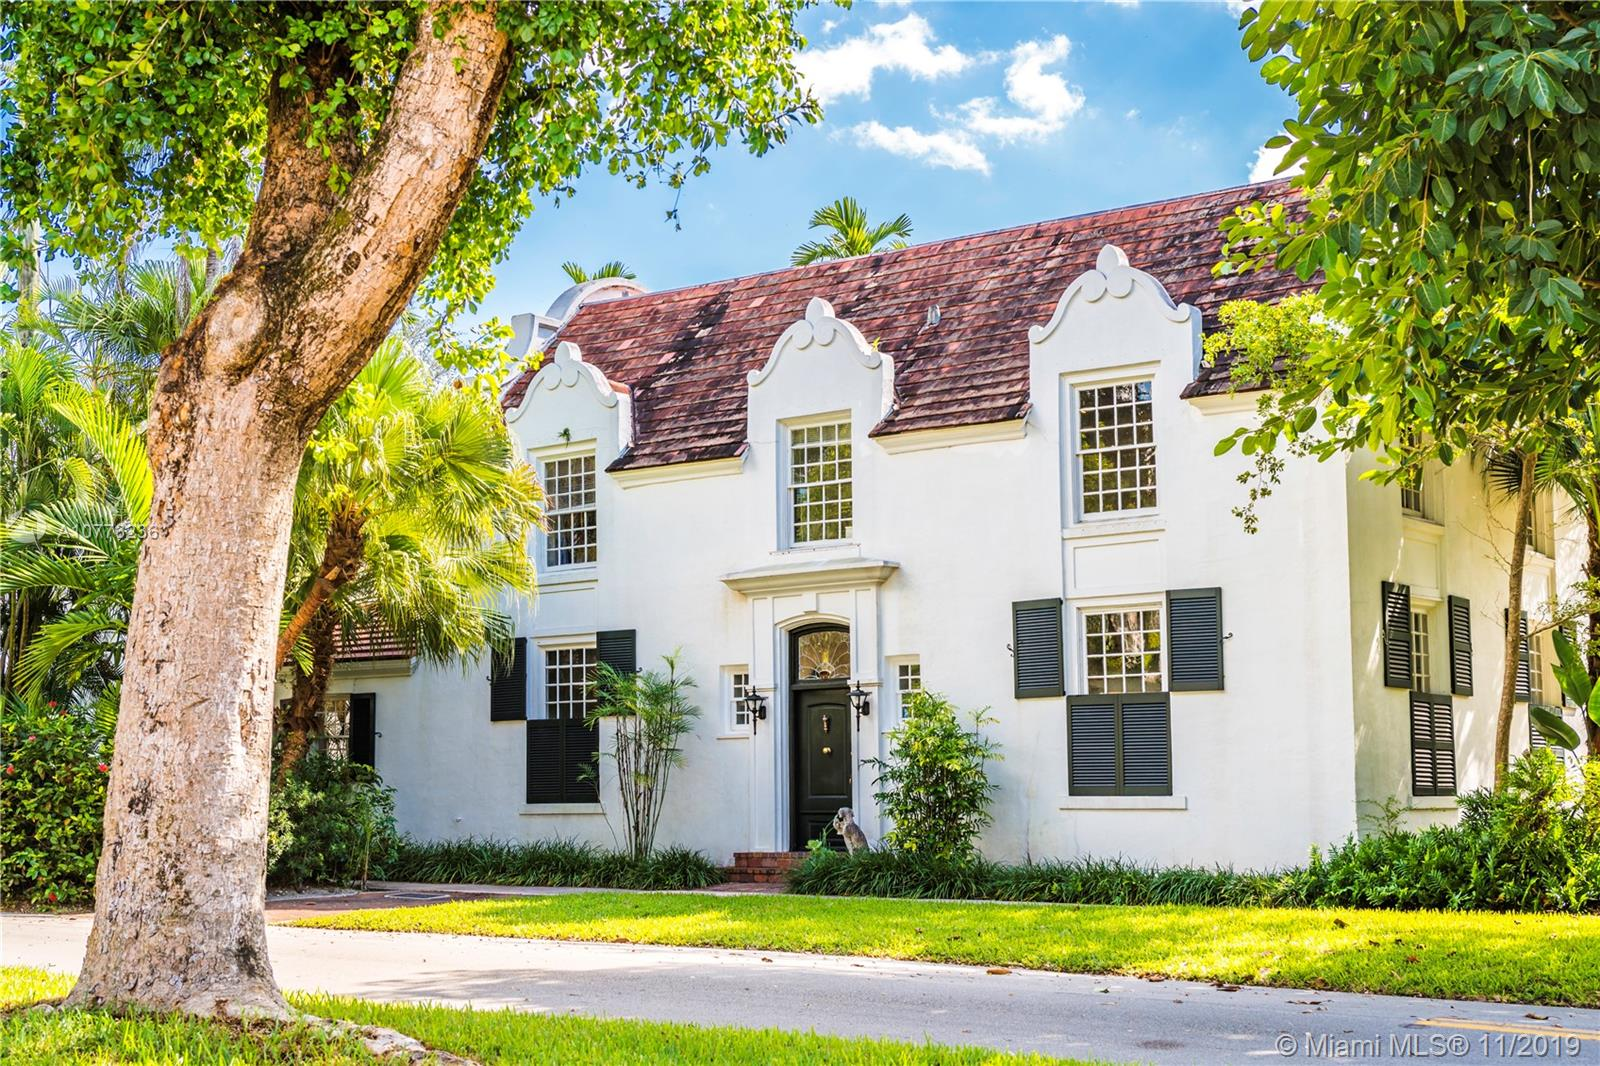 """Introducing Historic house, """"Cape Dutch"""". One of only five homes built in the 1920's in one of Coral Gables uniquely themed villages. The Dutch South African Village is a unique assemblage of homes designed by the well-knownPalm Beach architect Marion Sims Wyeth and built by Coral Gables developer George Merrick. This unique village drew inspiration from the Dutch farmhouses of those wealthy planters of Cape Town. Fewer than 80 of the1,000 planned residences of Merrick's villages were built. This traditional Cape Dutch designed home is an incredible piece of history. The home features five bedrooms and three and a half baths split between the mainhouse and the guest house in the rear, divided by the pool and spacious Veranda perfect for enjoying the serene outdoor space."""